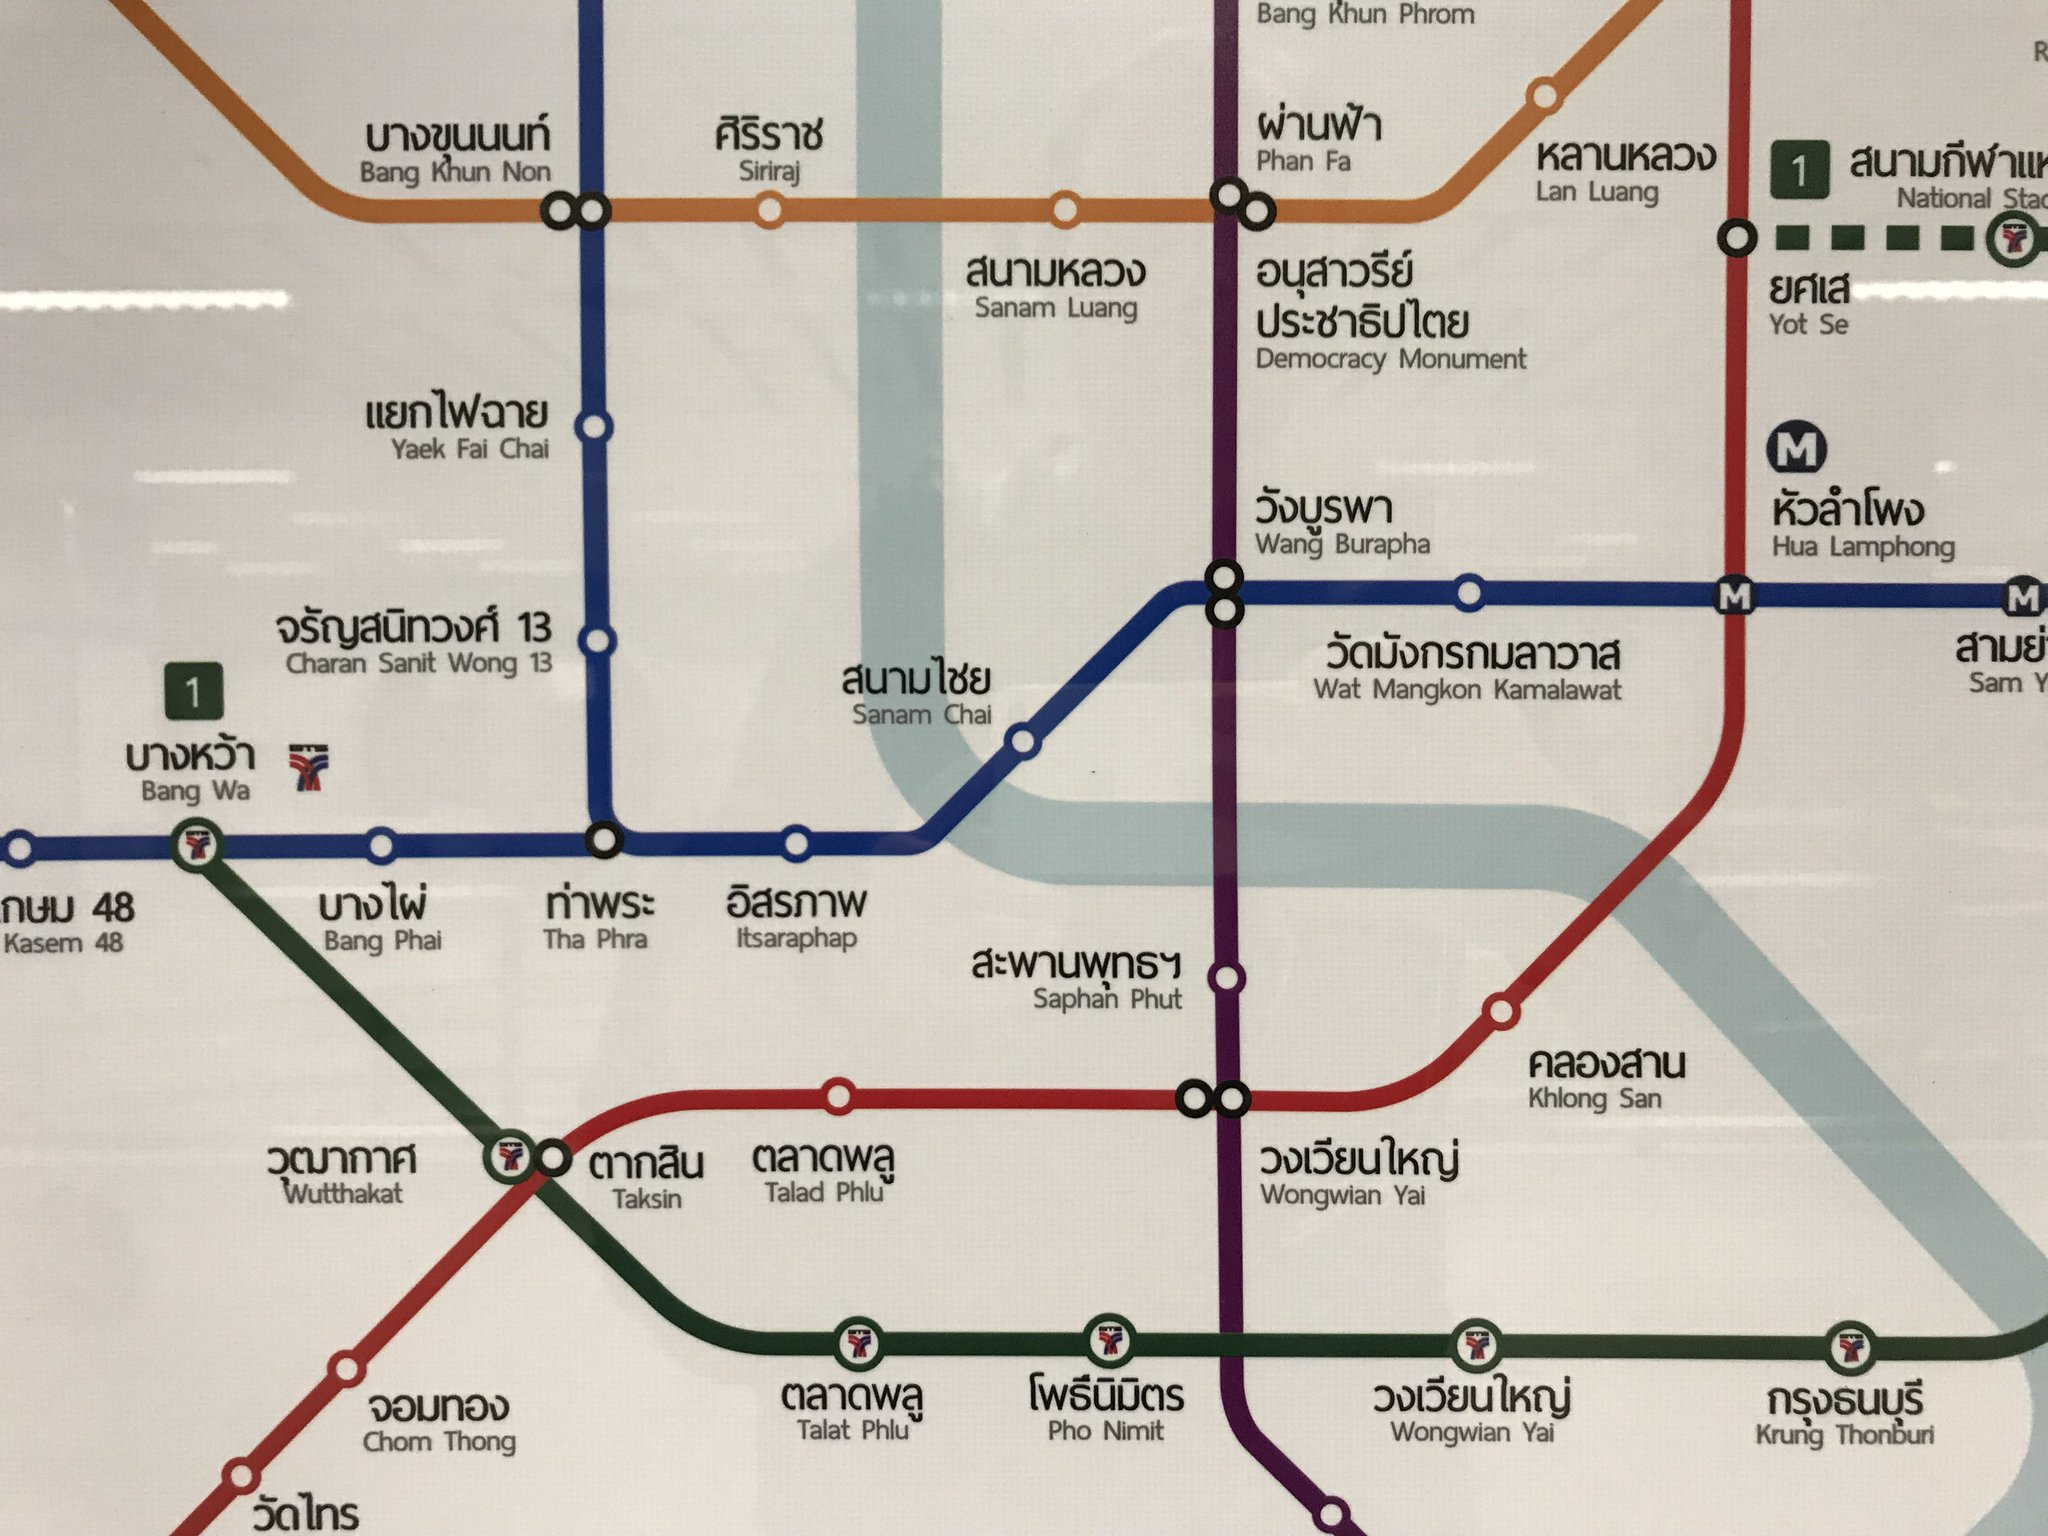 The four underground stations that have been purposefully decorated to reflect on the architect of the area are Wat Mangkon Kamalawat in Chinatown, Sam Yod/Wang Burapha and Sanamchai in Rattanakosin, and Itsaraphap on the other side of the river #Bangkok https://t.co/pU8eK57H1P